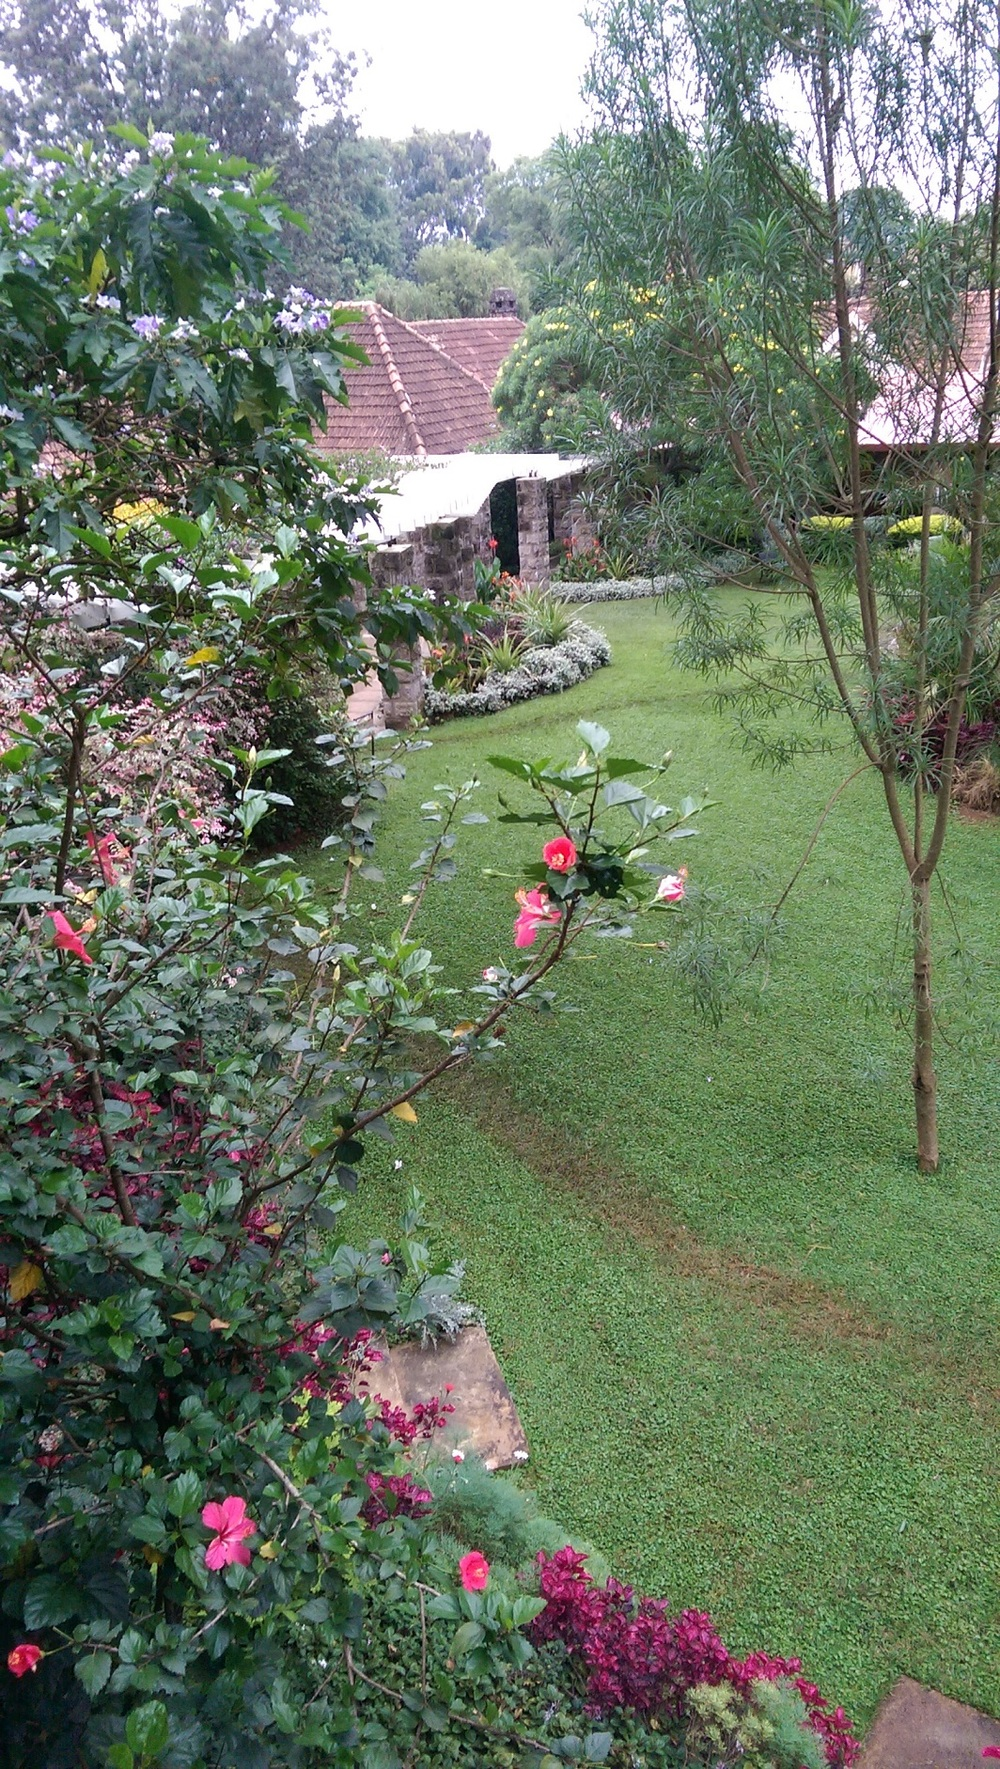 A view of the beautiful garden at Amani Gardens Inn